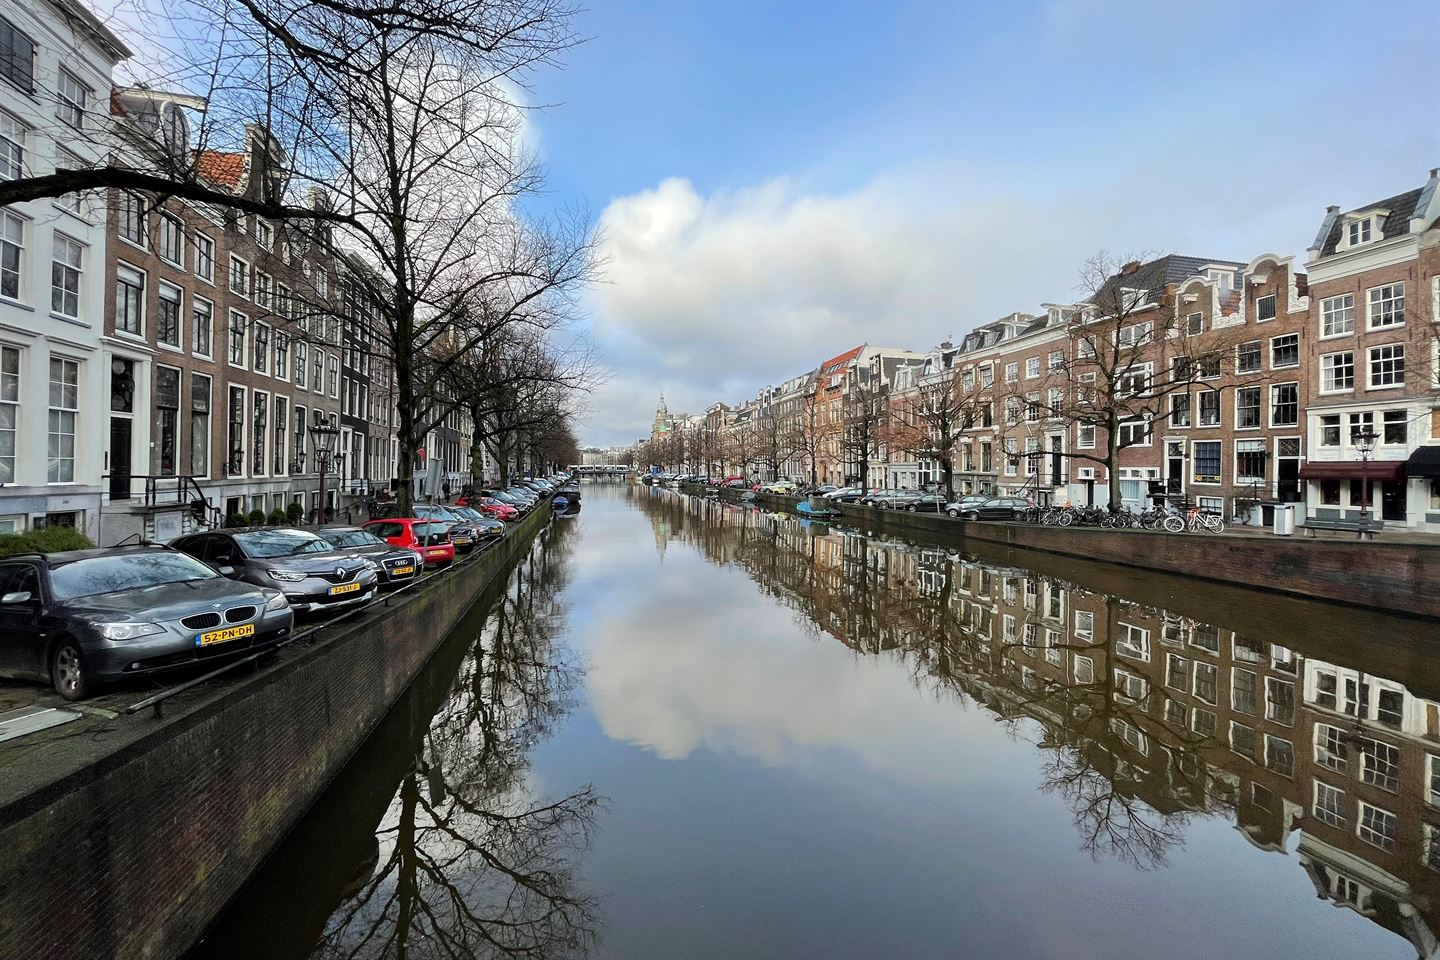 View photo 5 of Keizersgracht 592 -1